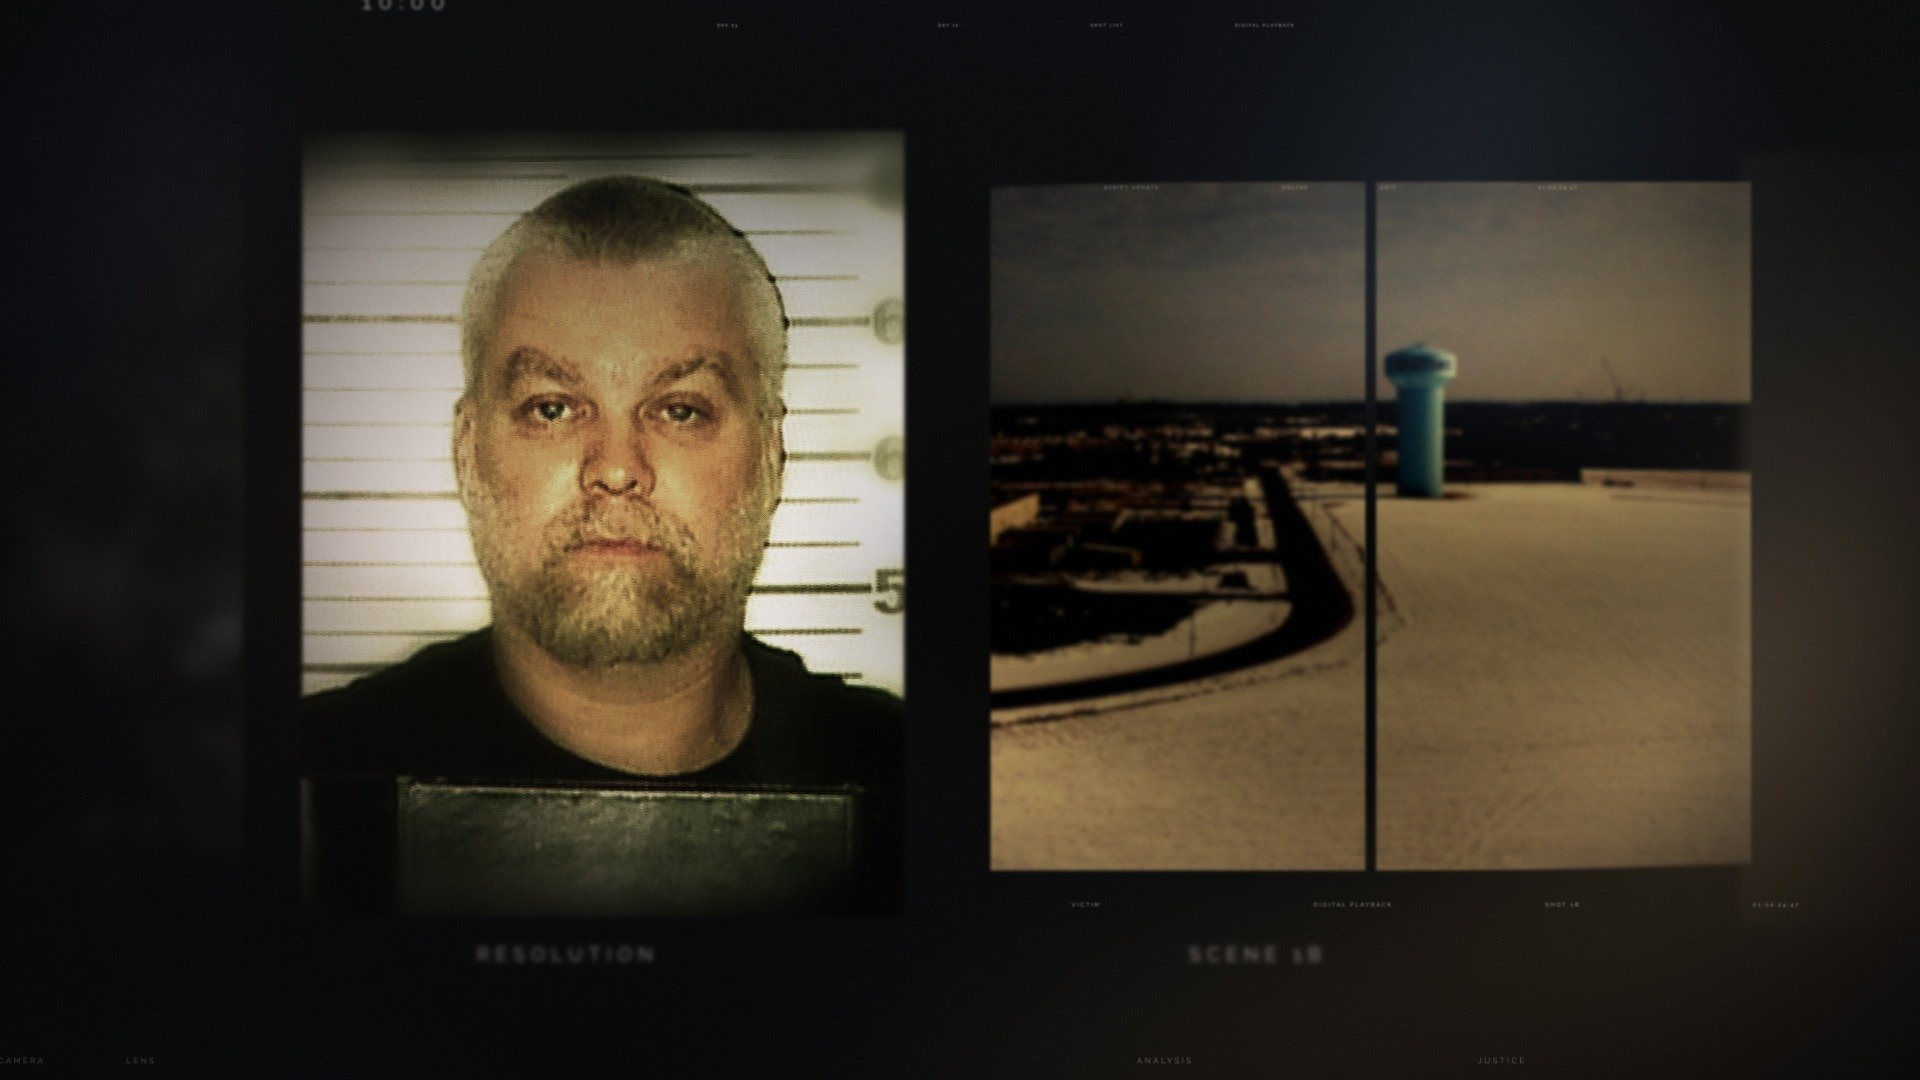 Return to Manitowoc County: The State of Wisconsin vs. Avery